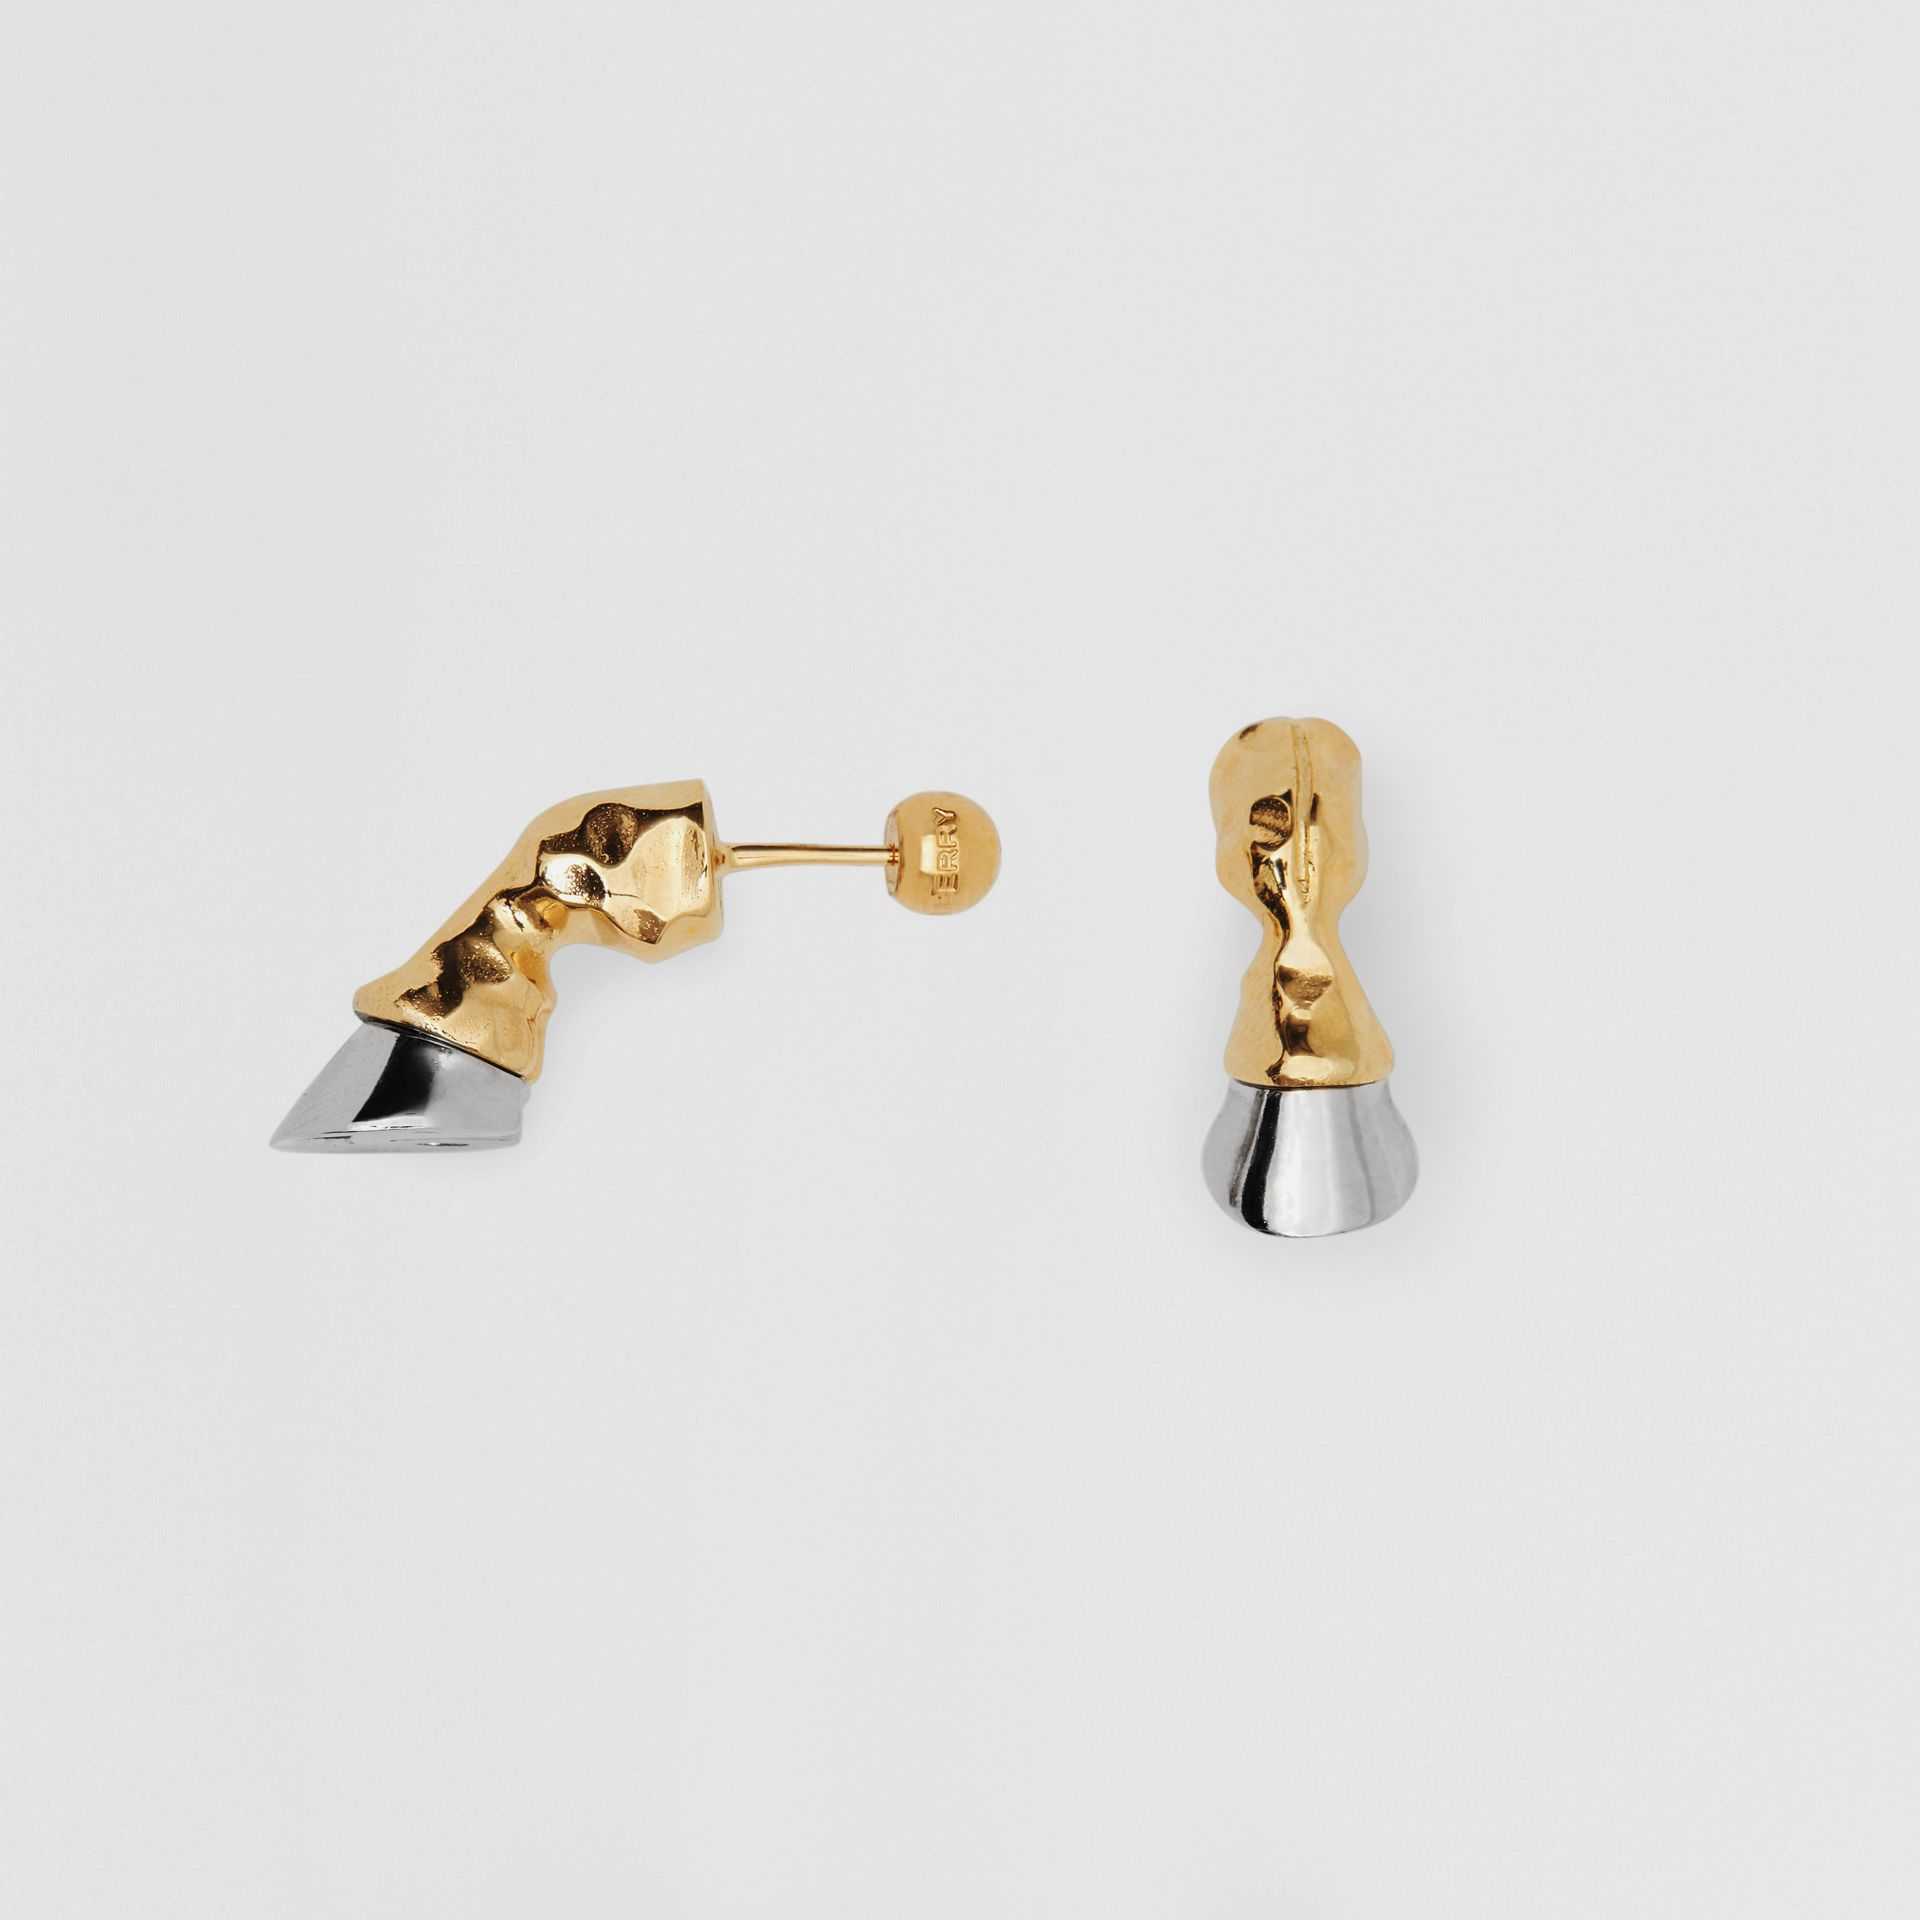 Gold and Palladium-plated Hoof Earrings in Palladio/light - Women | Burberry Canada - gallery image 3